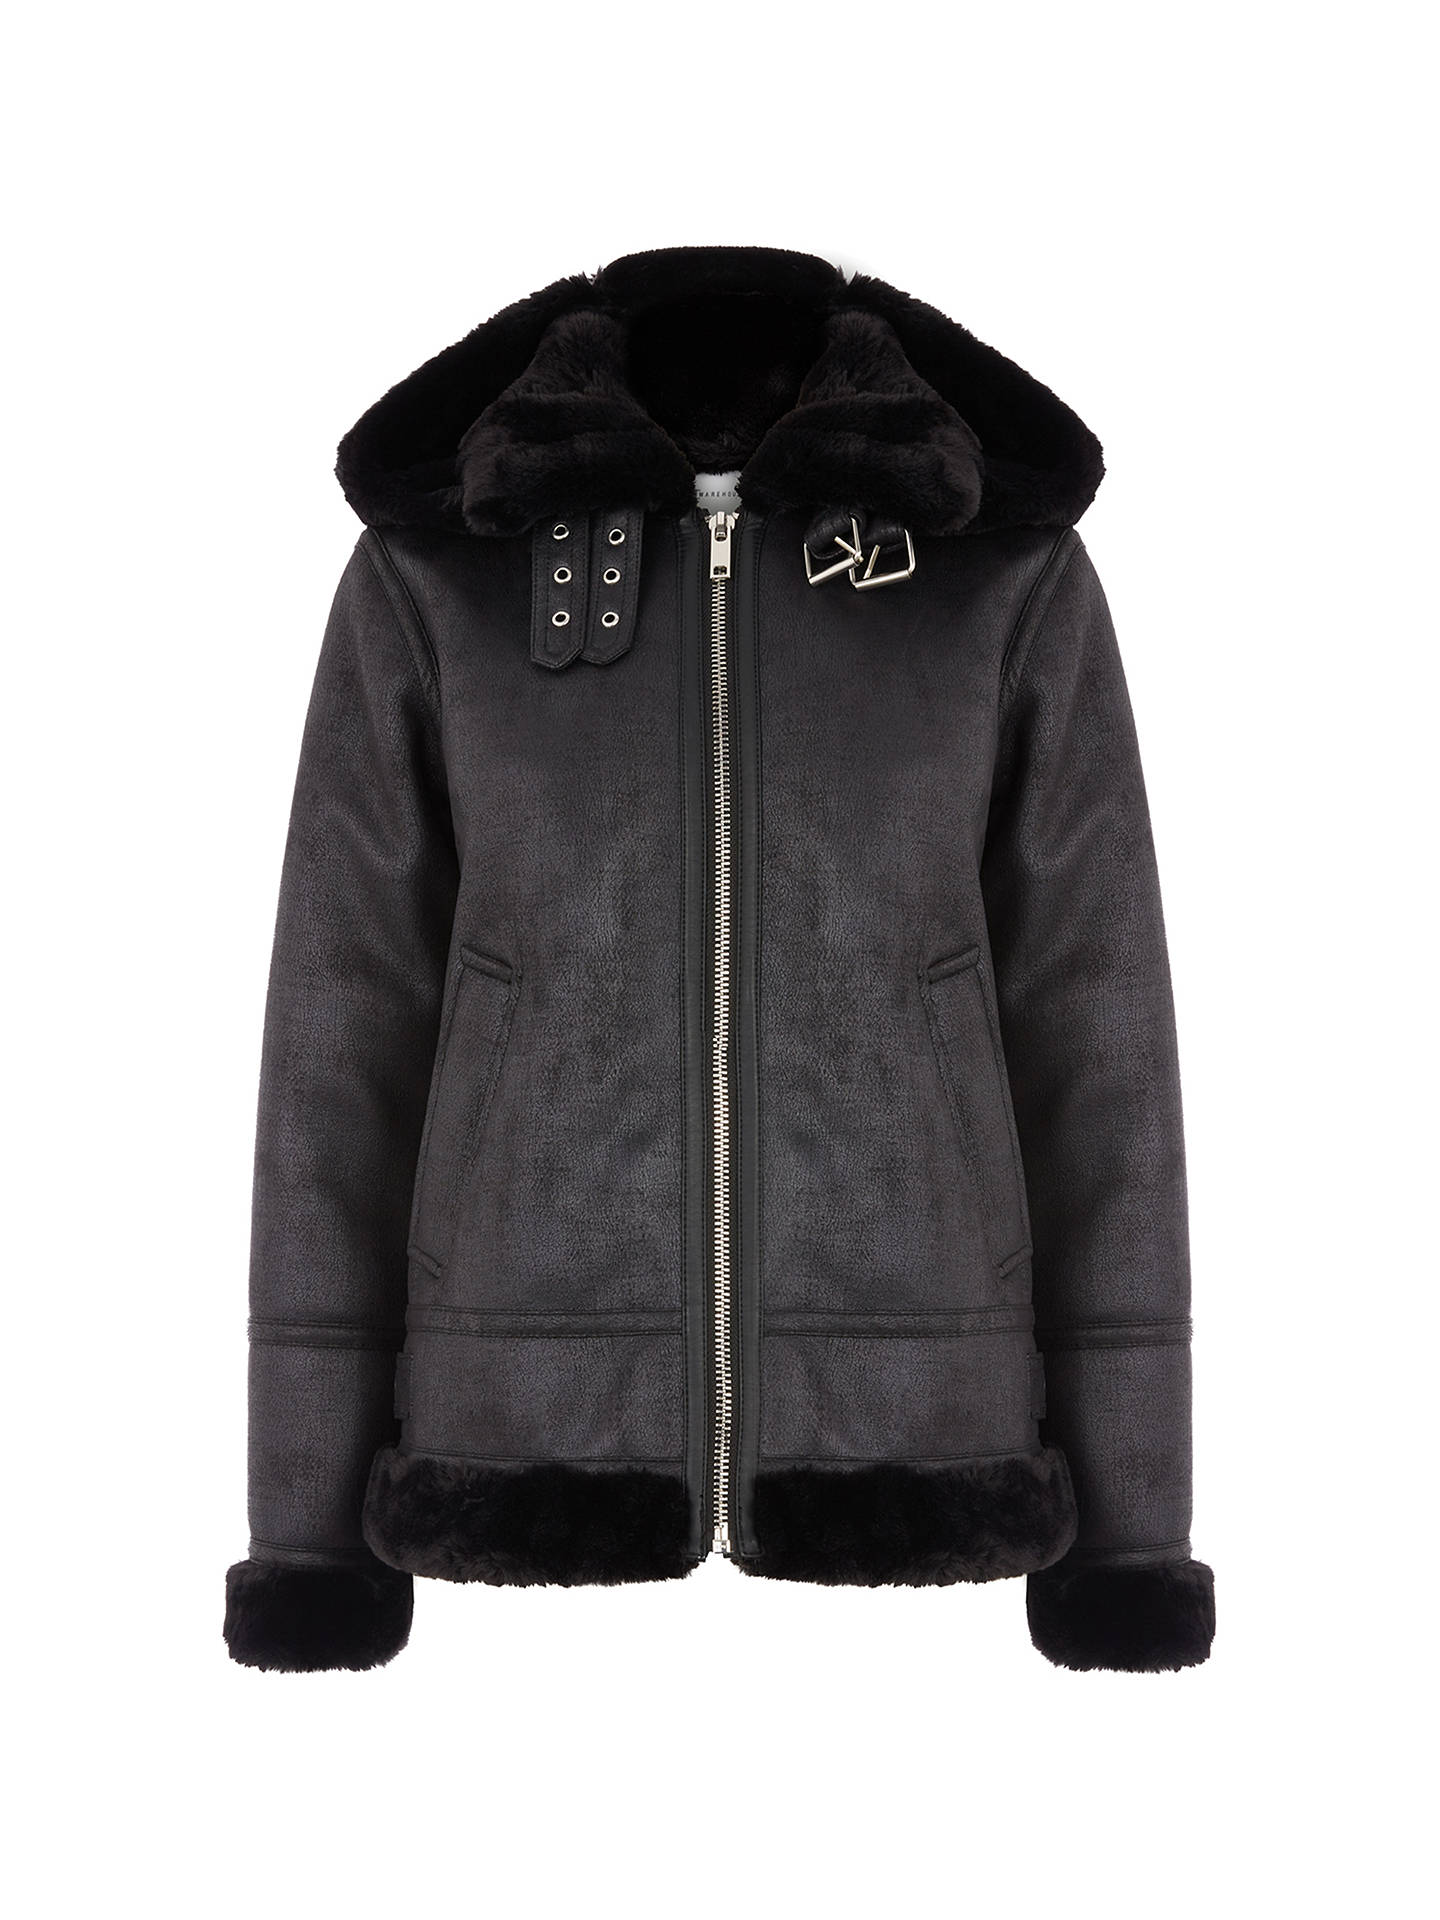 BuyWarehouse Faux Leather Hooded Biker Jacket, Black, 6 Online at johnlewis.com